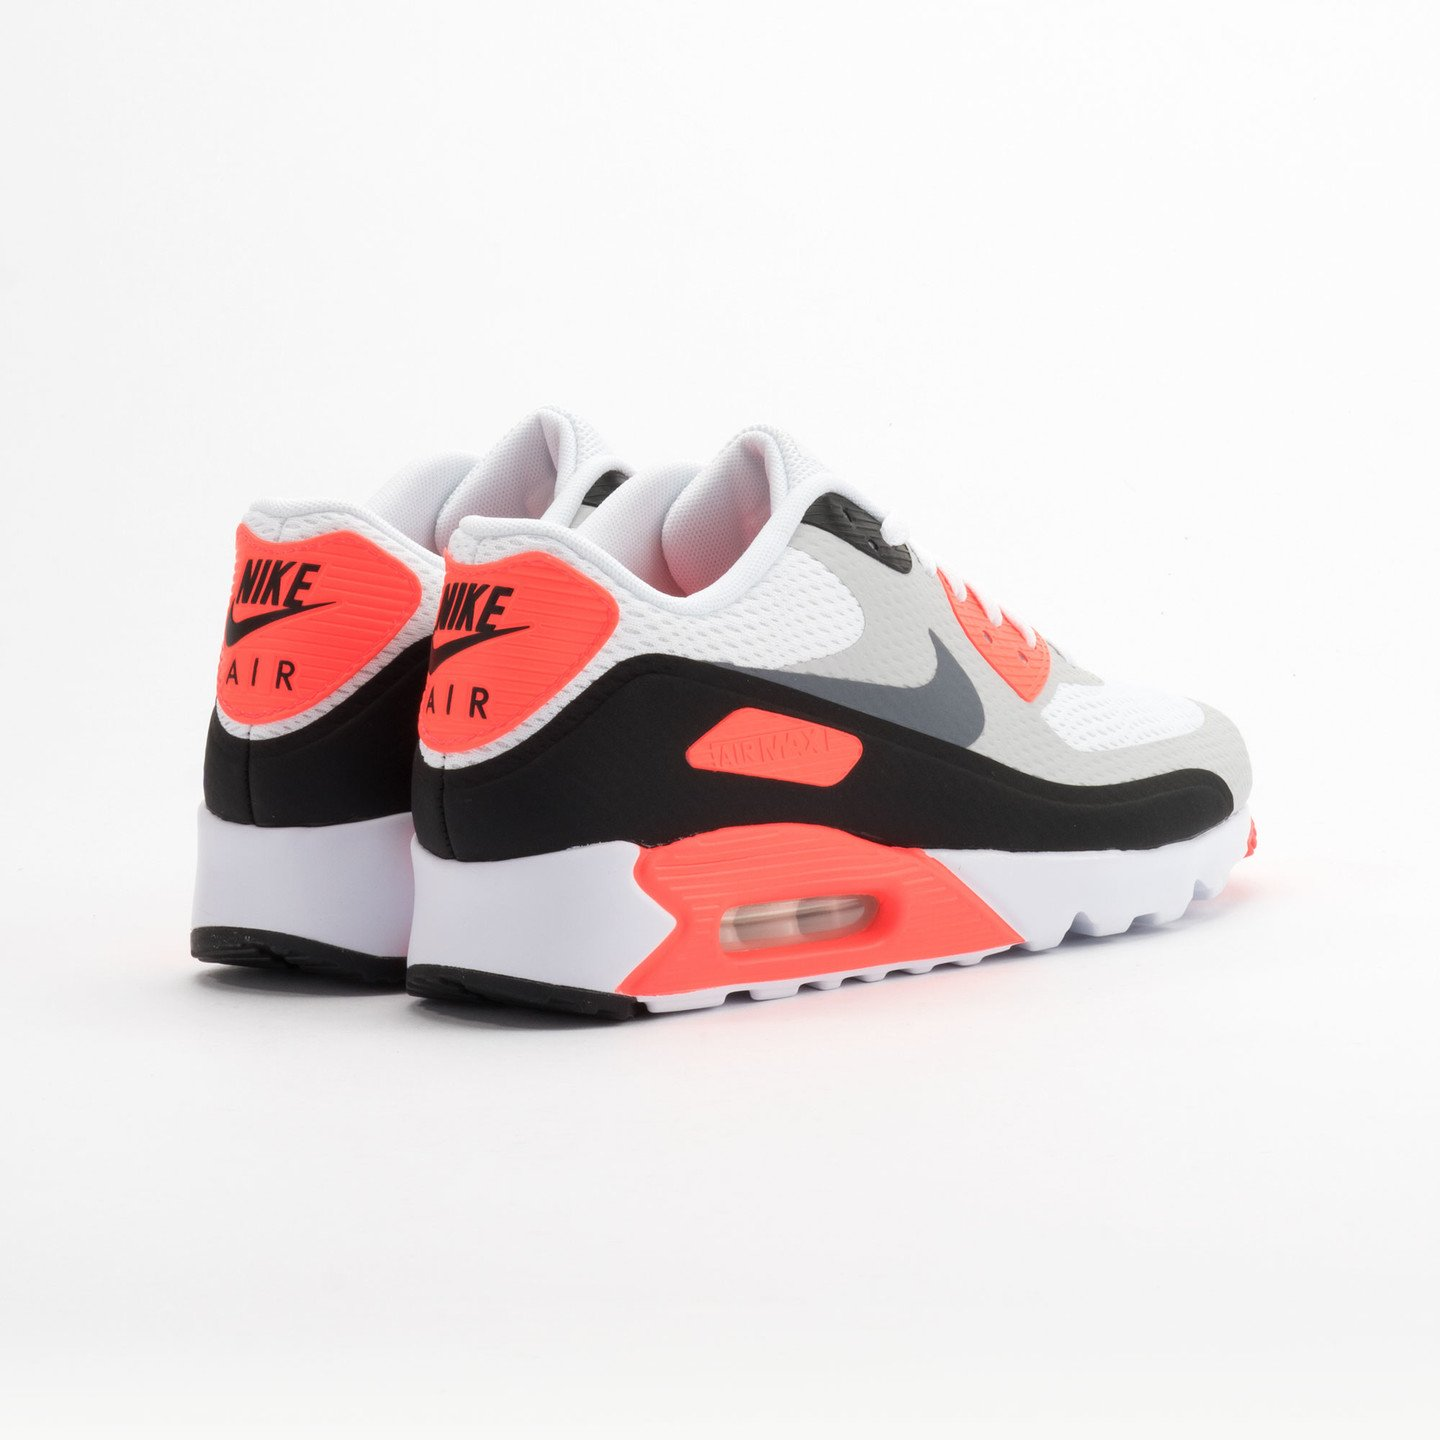 Nike Air Max 90 OG Essential White / Black / Infrared 819474-106-44.5